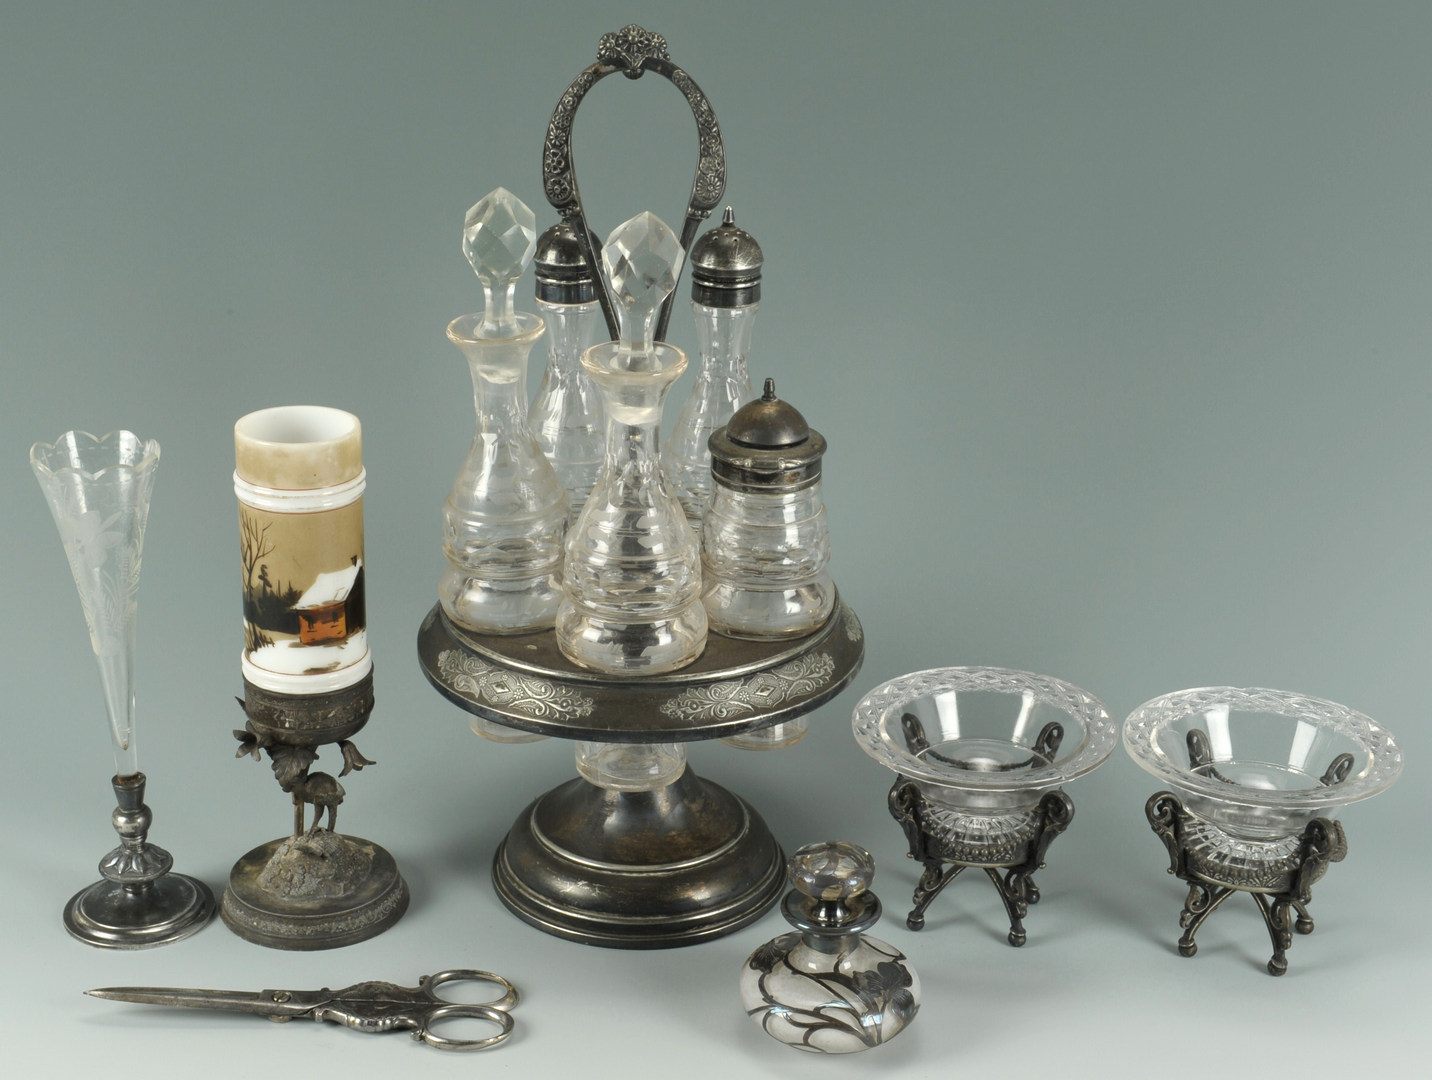 Lot 625: Six Victorian glass and silver items, most plated